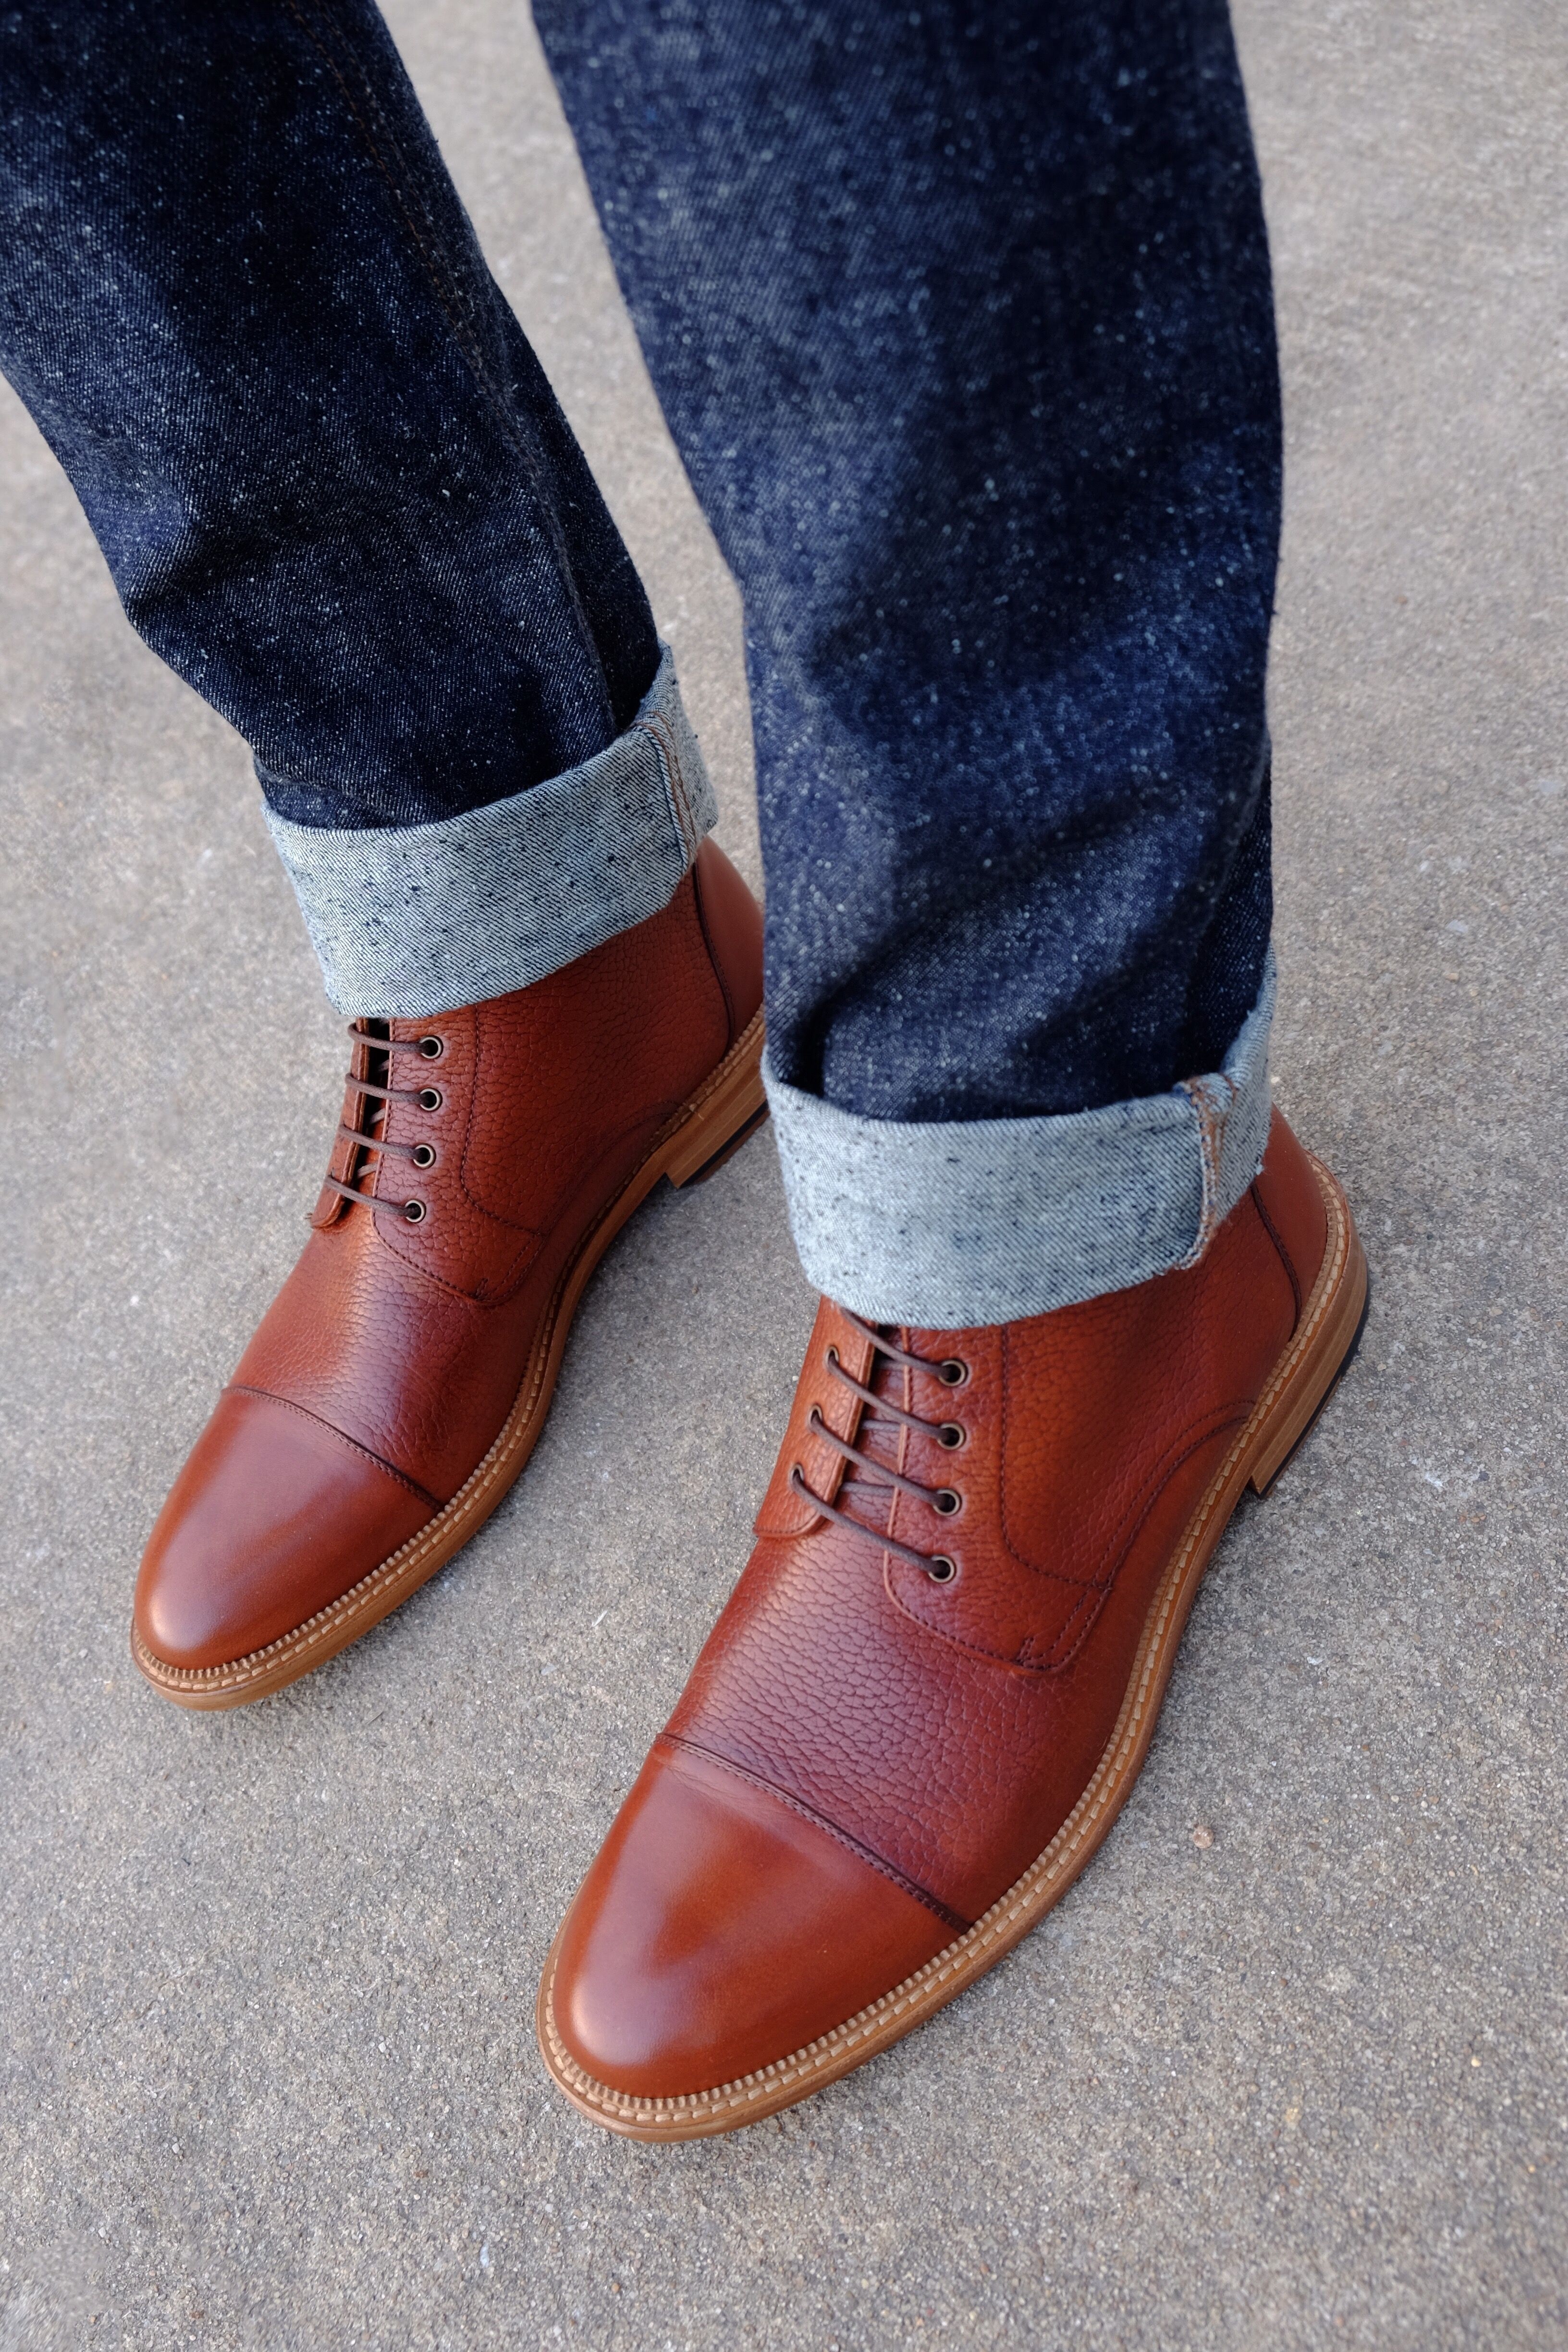 Awesome Rome boots by Taft and paired with nep denim! texture heaven!  Follow @